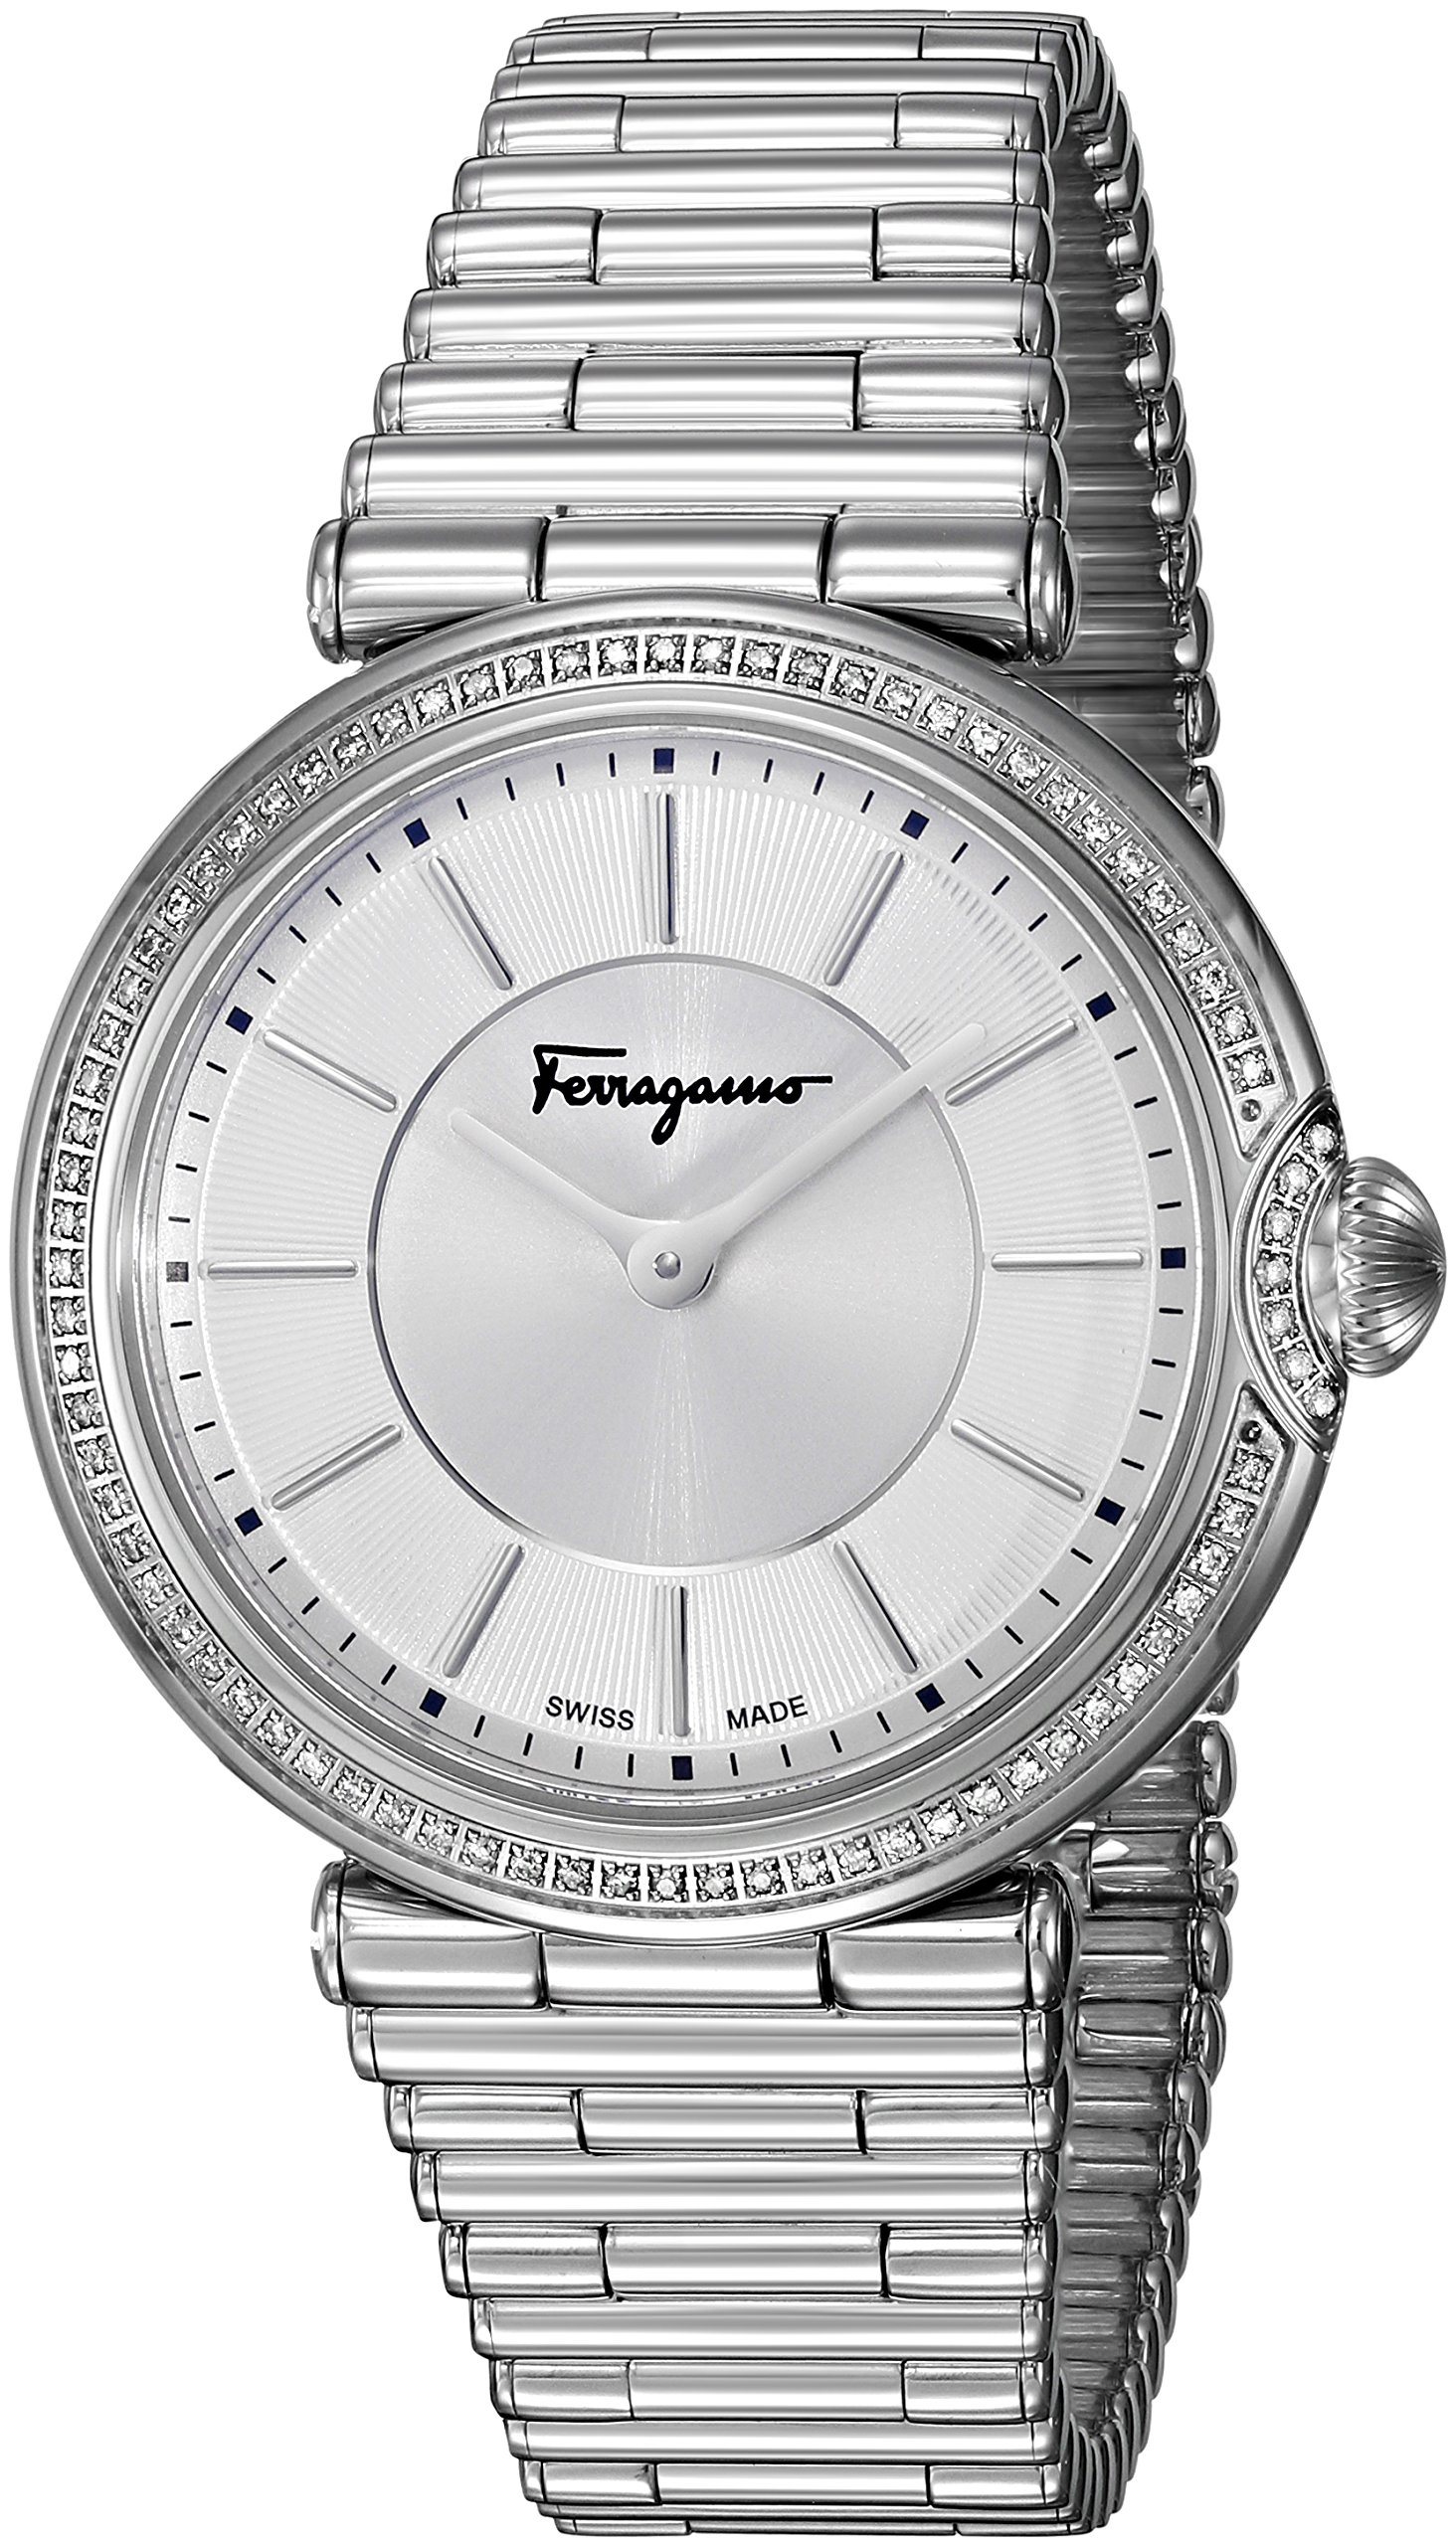 Salvatore Ferragamo Women's FIN050015 Style Analog Display Quartz Silver Watch by Salvatore Ferragamo